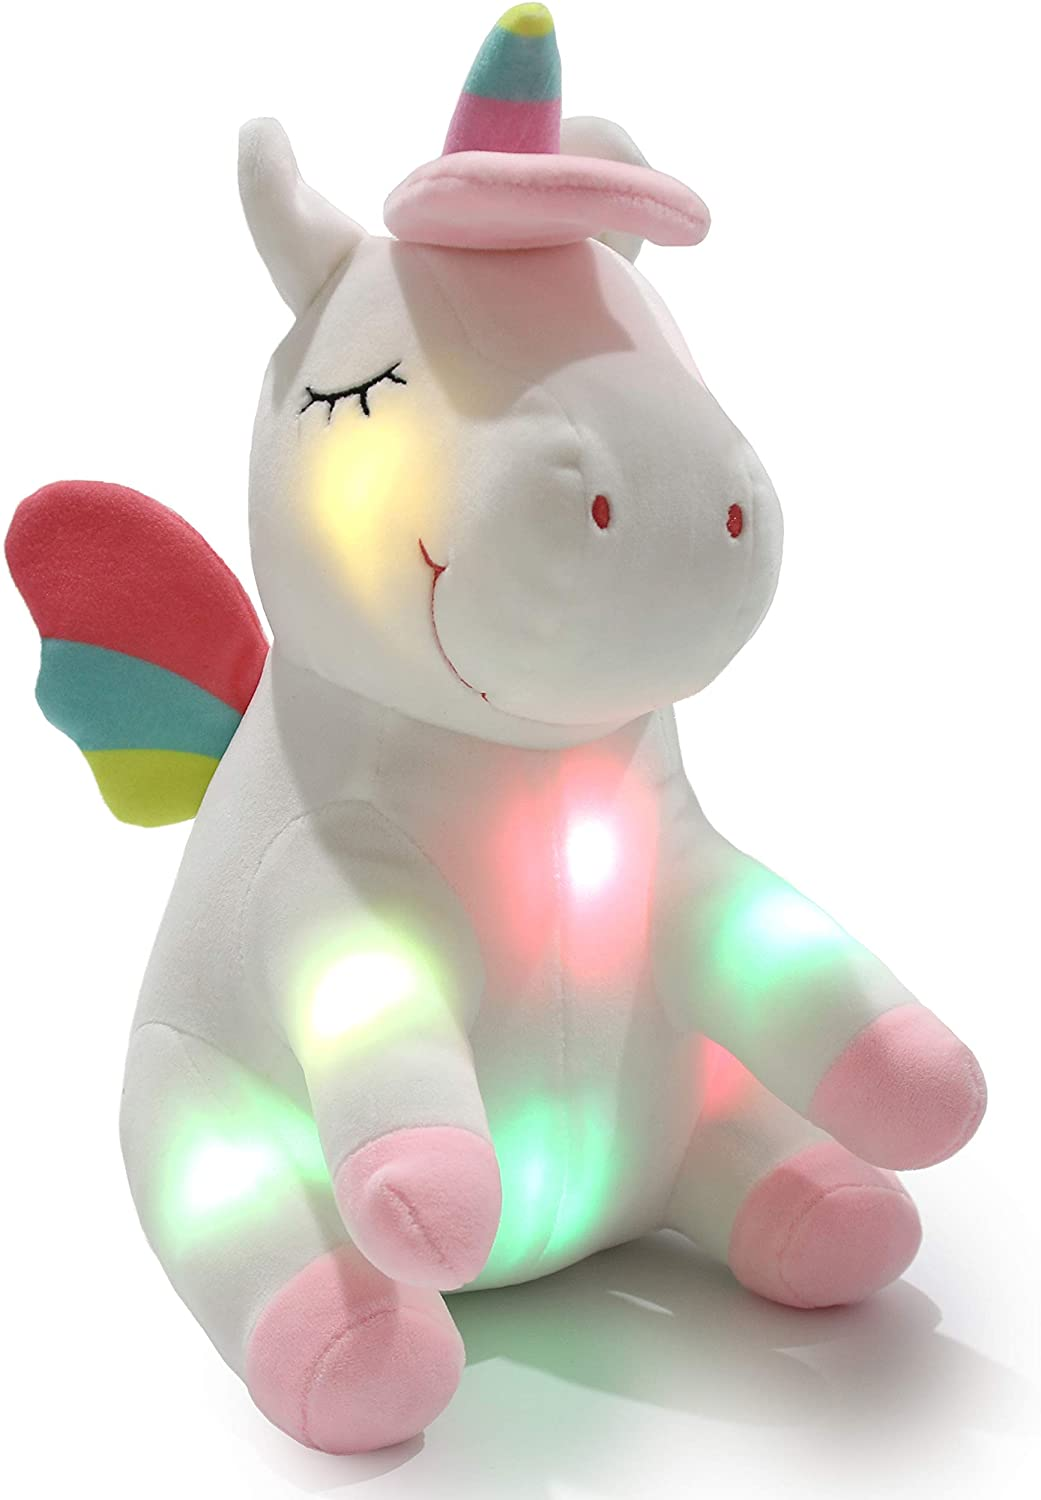 Athoinsu Light up Unicorn Soft Plush Toy LED Stuffed Animals with Colorful Night Lights Glowing Birthday for Toddler Girls Women, 12''